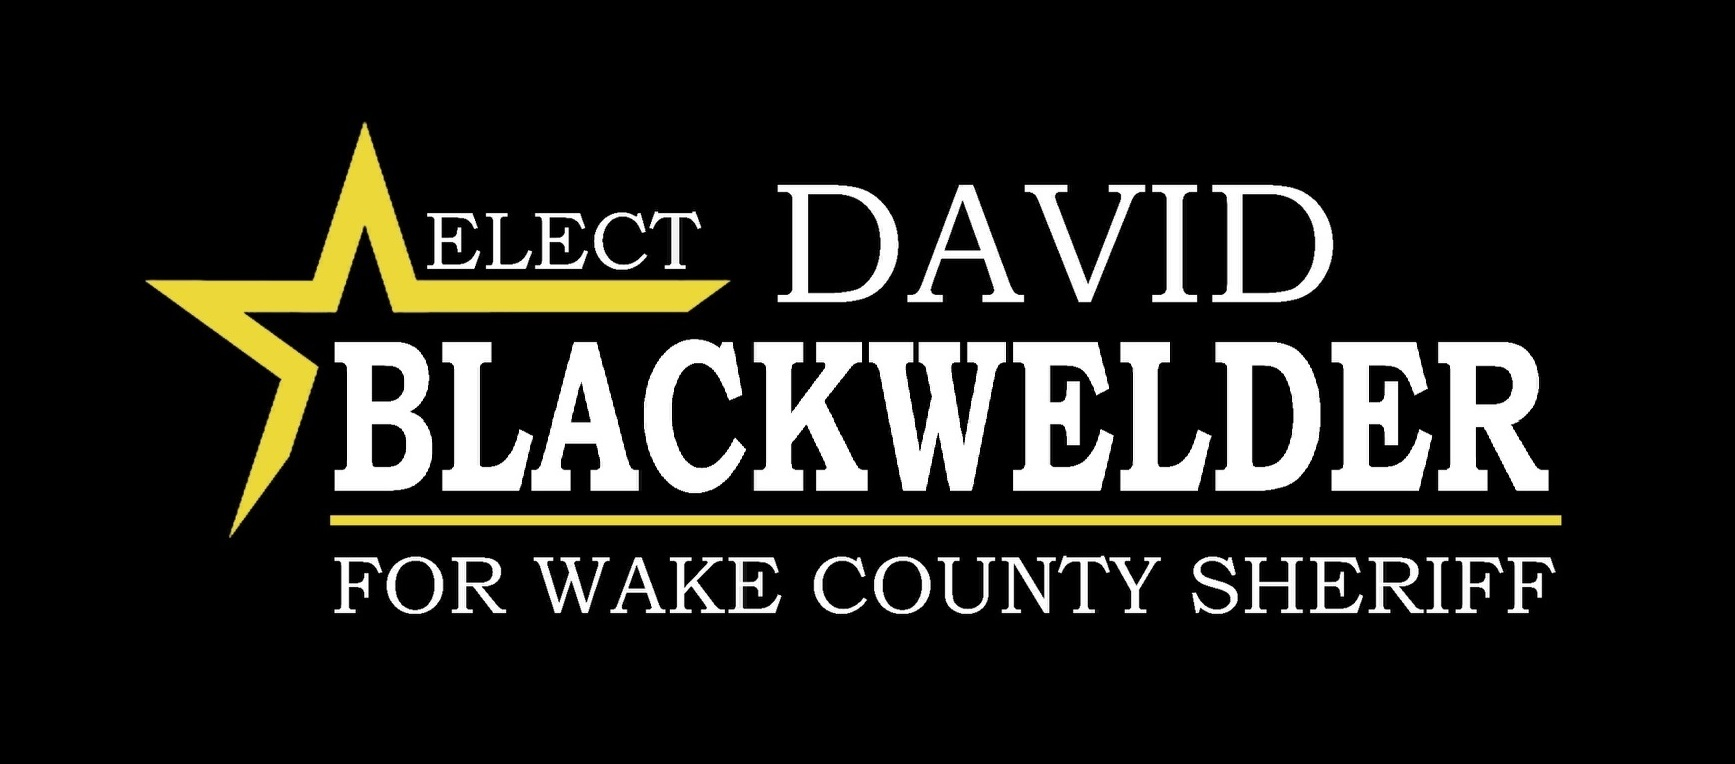 Blackwelder for Wake County: General Fund